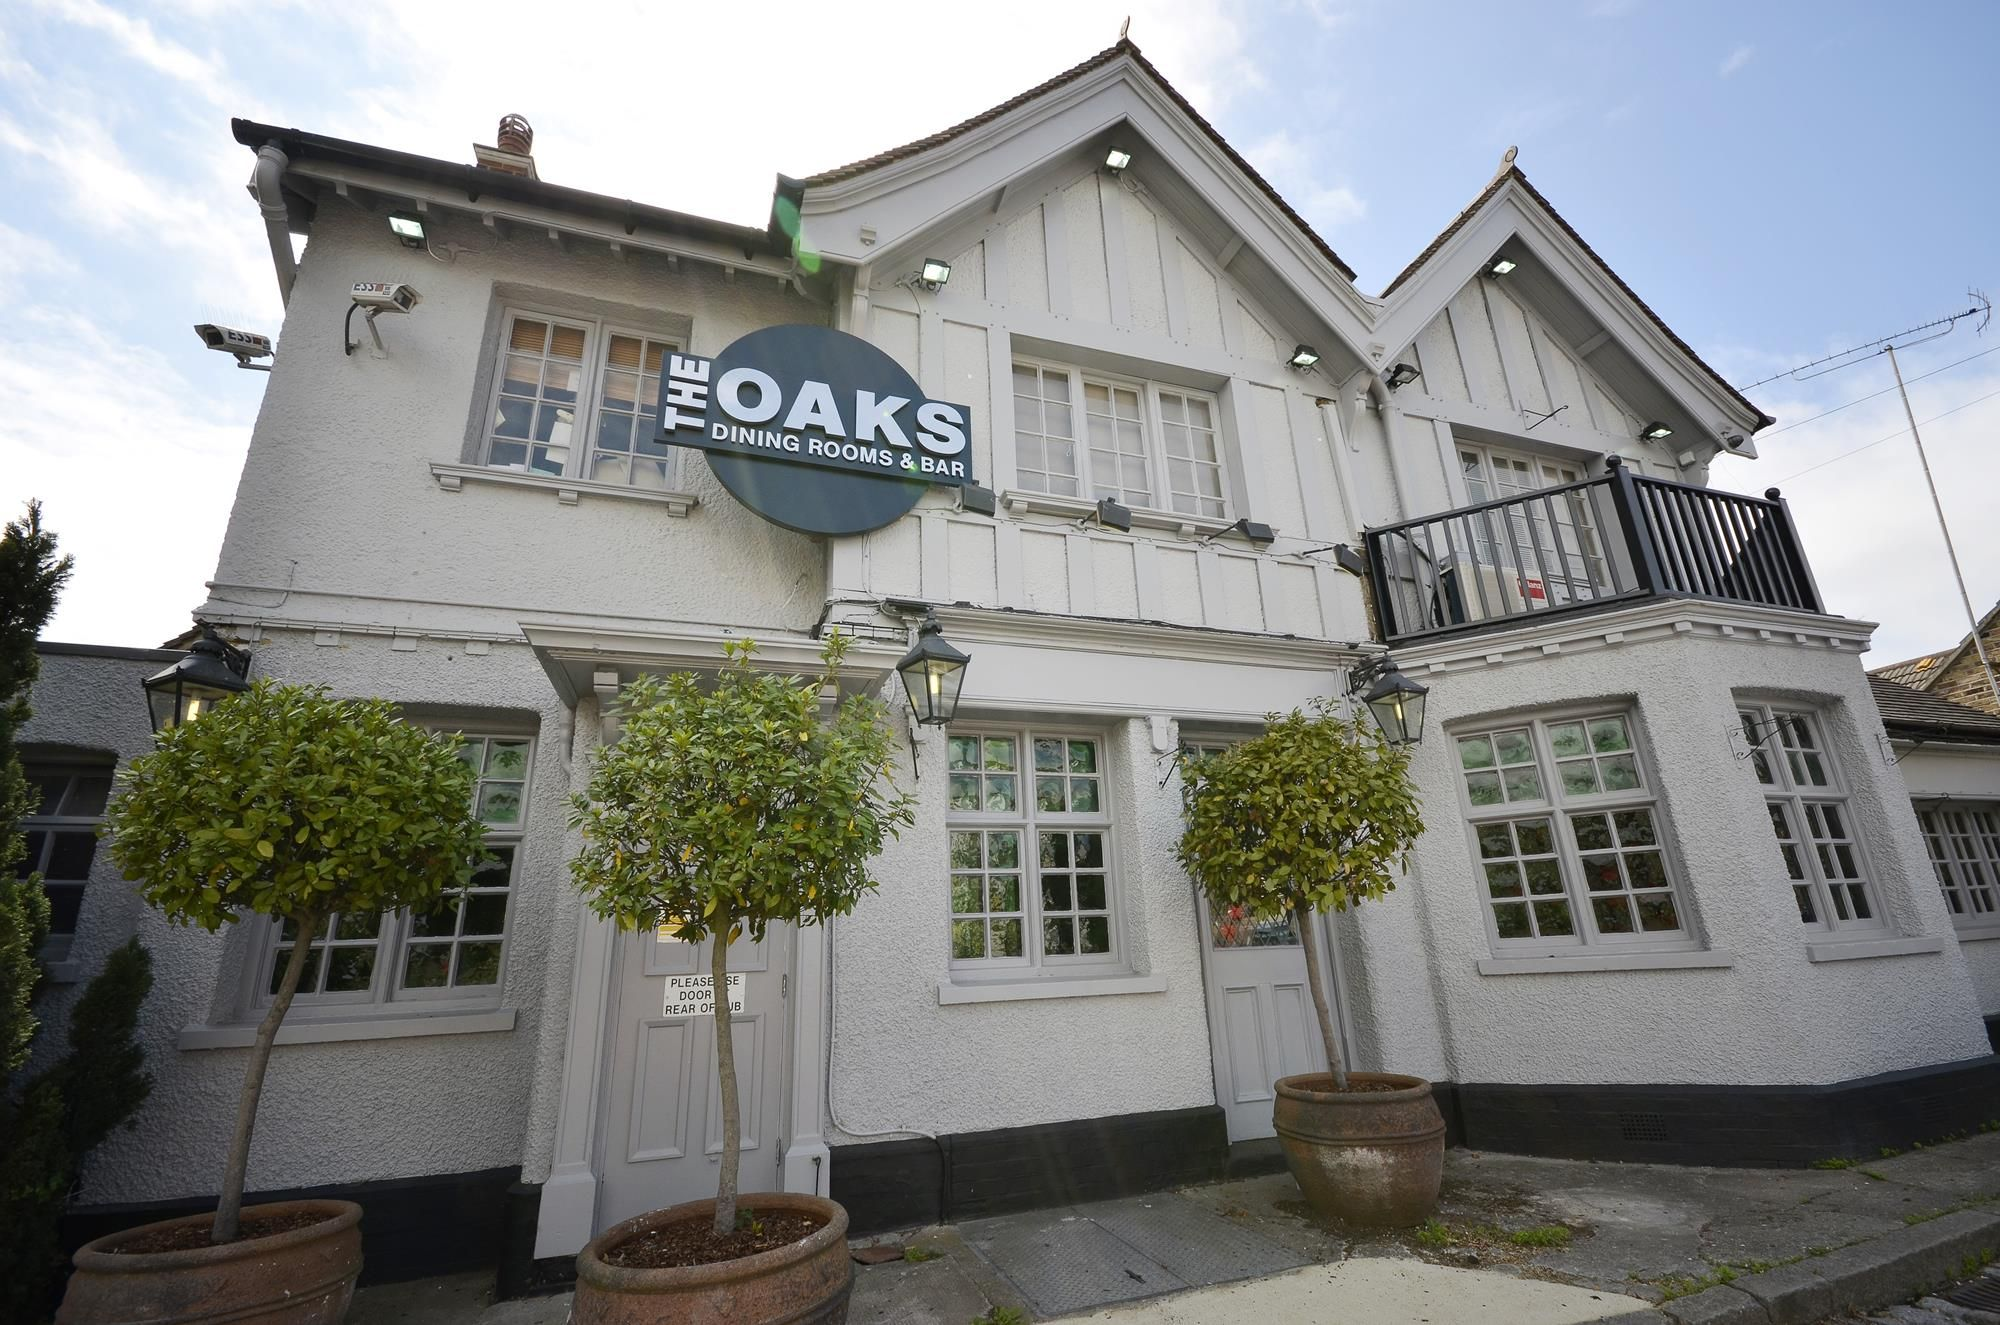 Gastro Pub Restaurant The Oaks Loughton Dining Rooms Bar Epping Forest